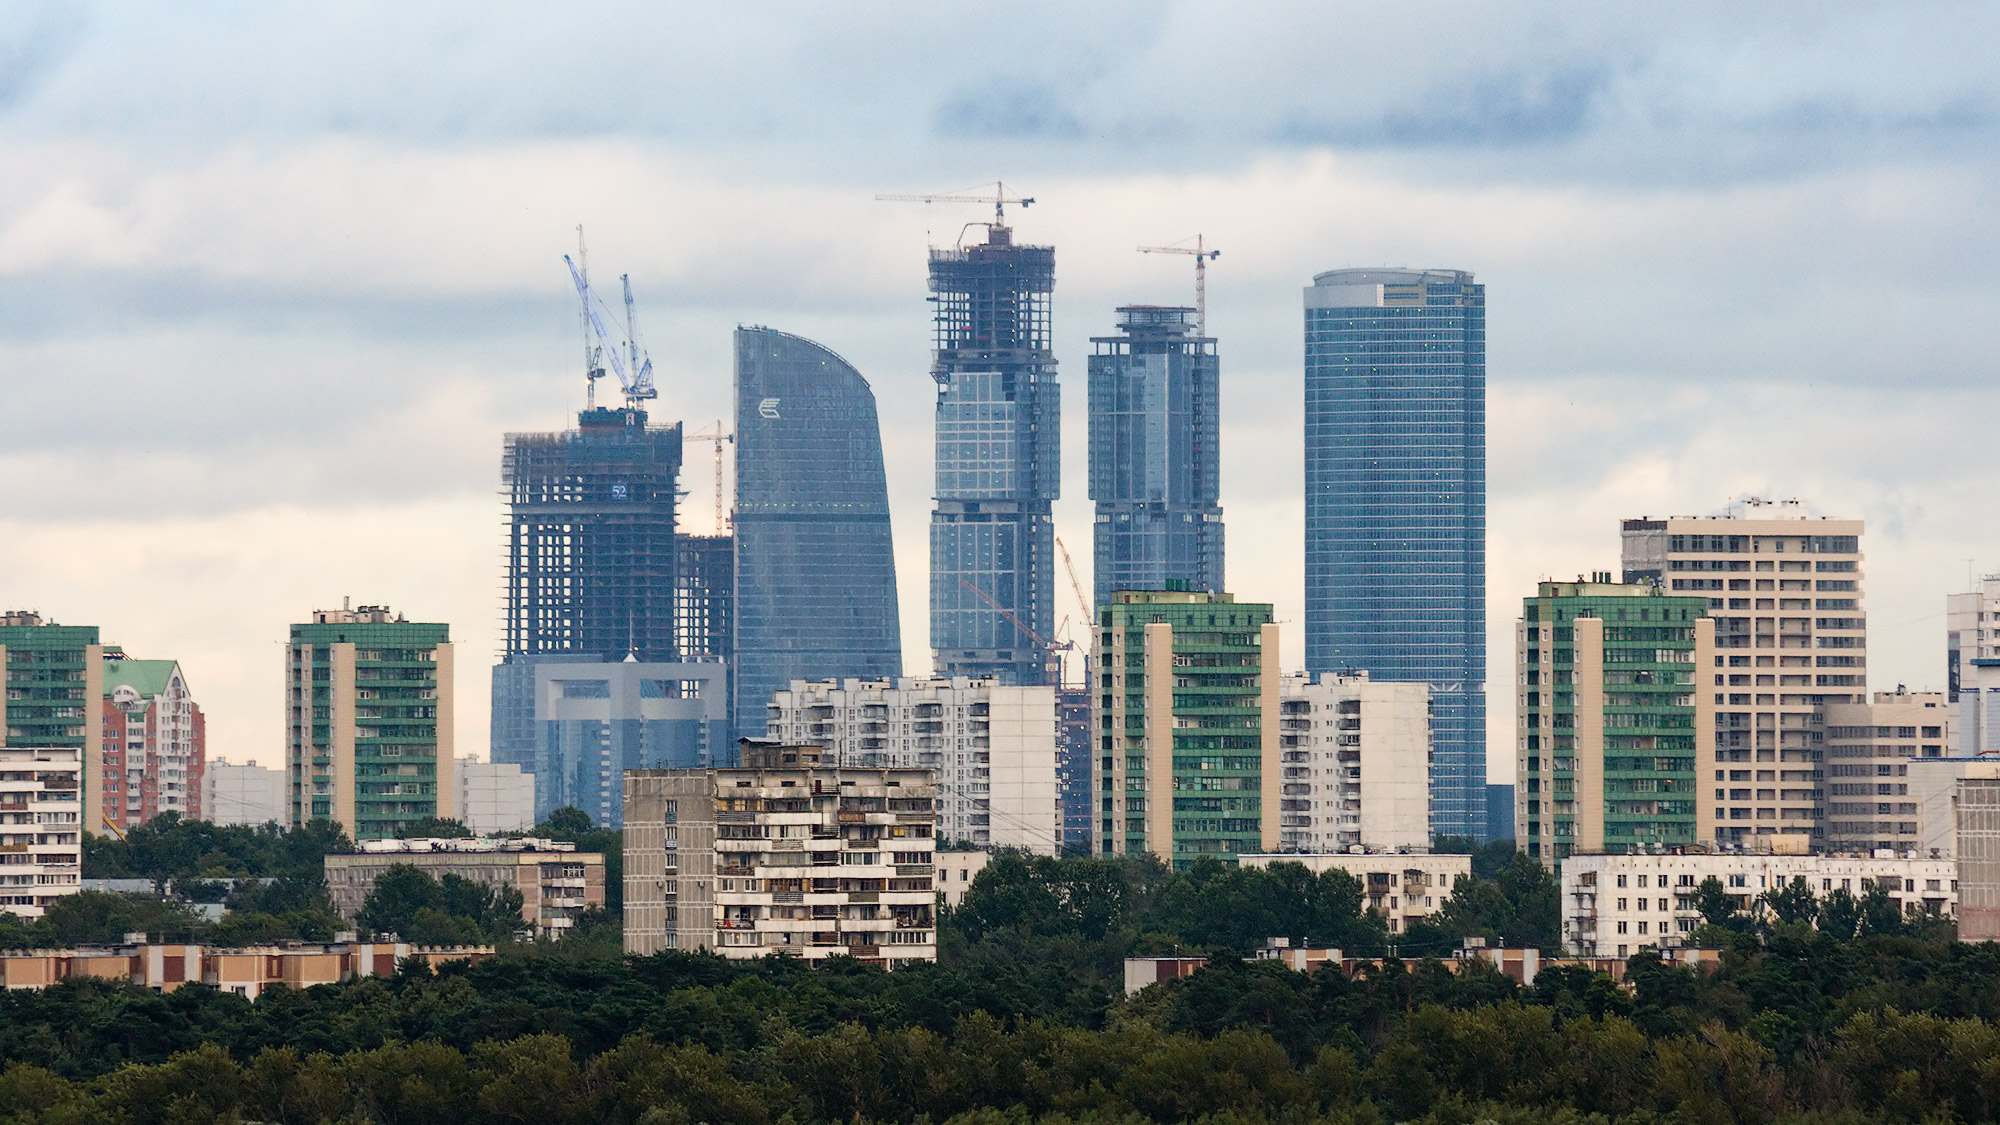 Moscow_City_landscape_july_2008.jpg